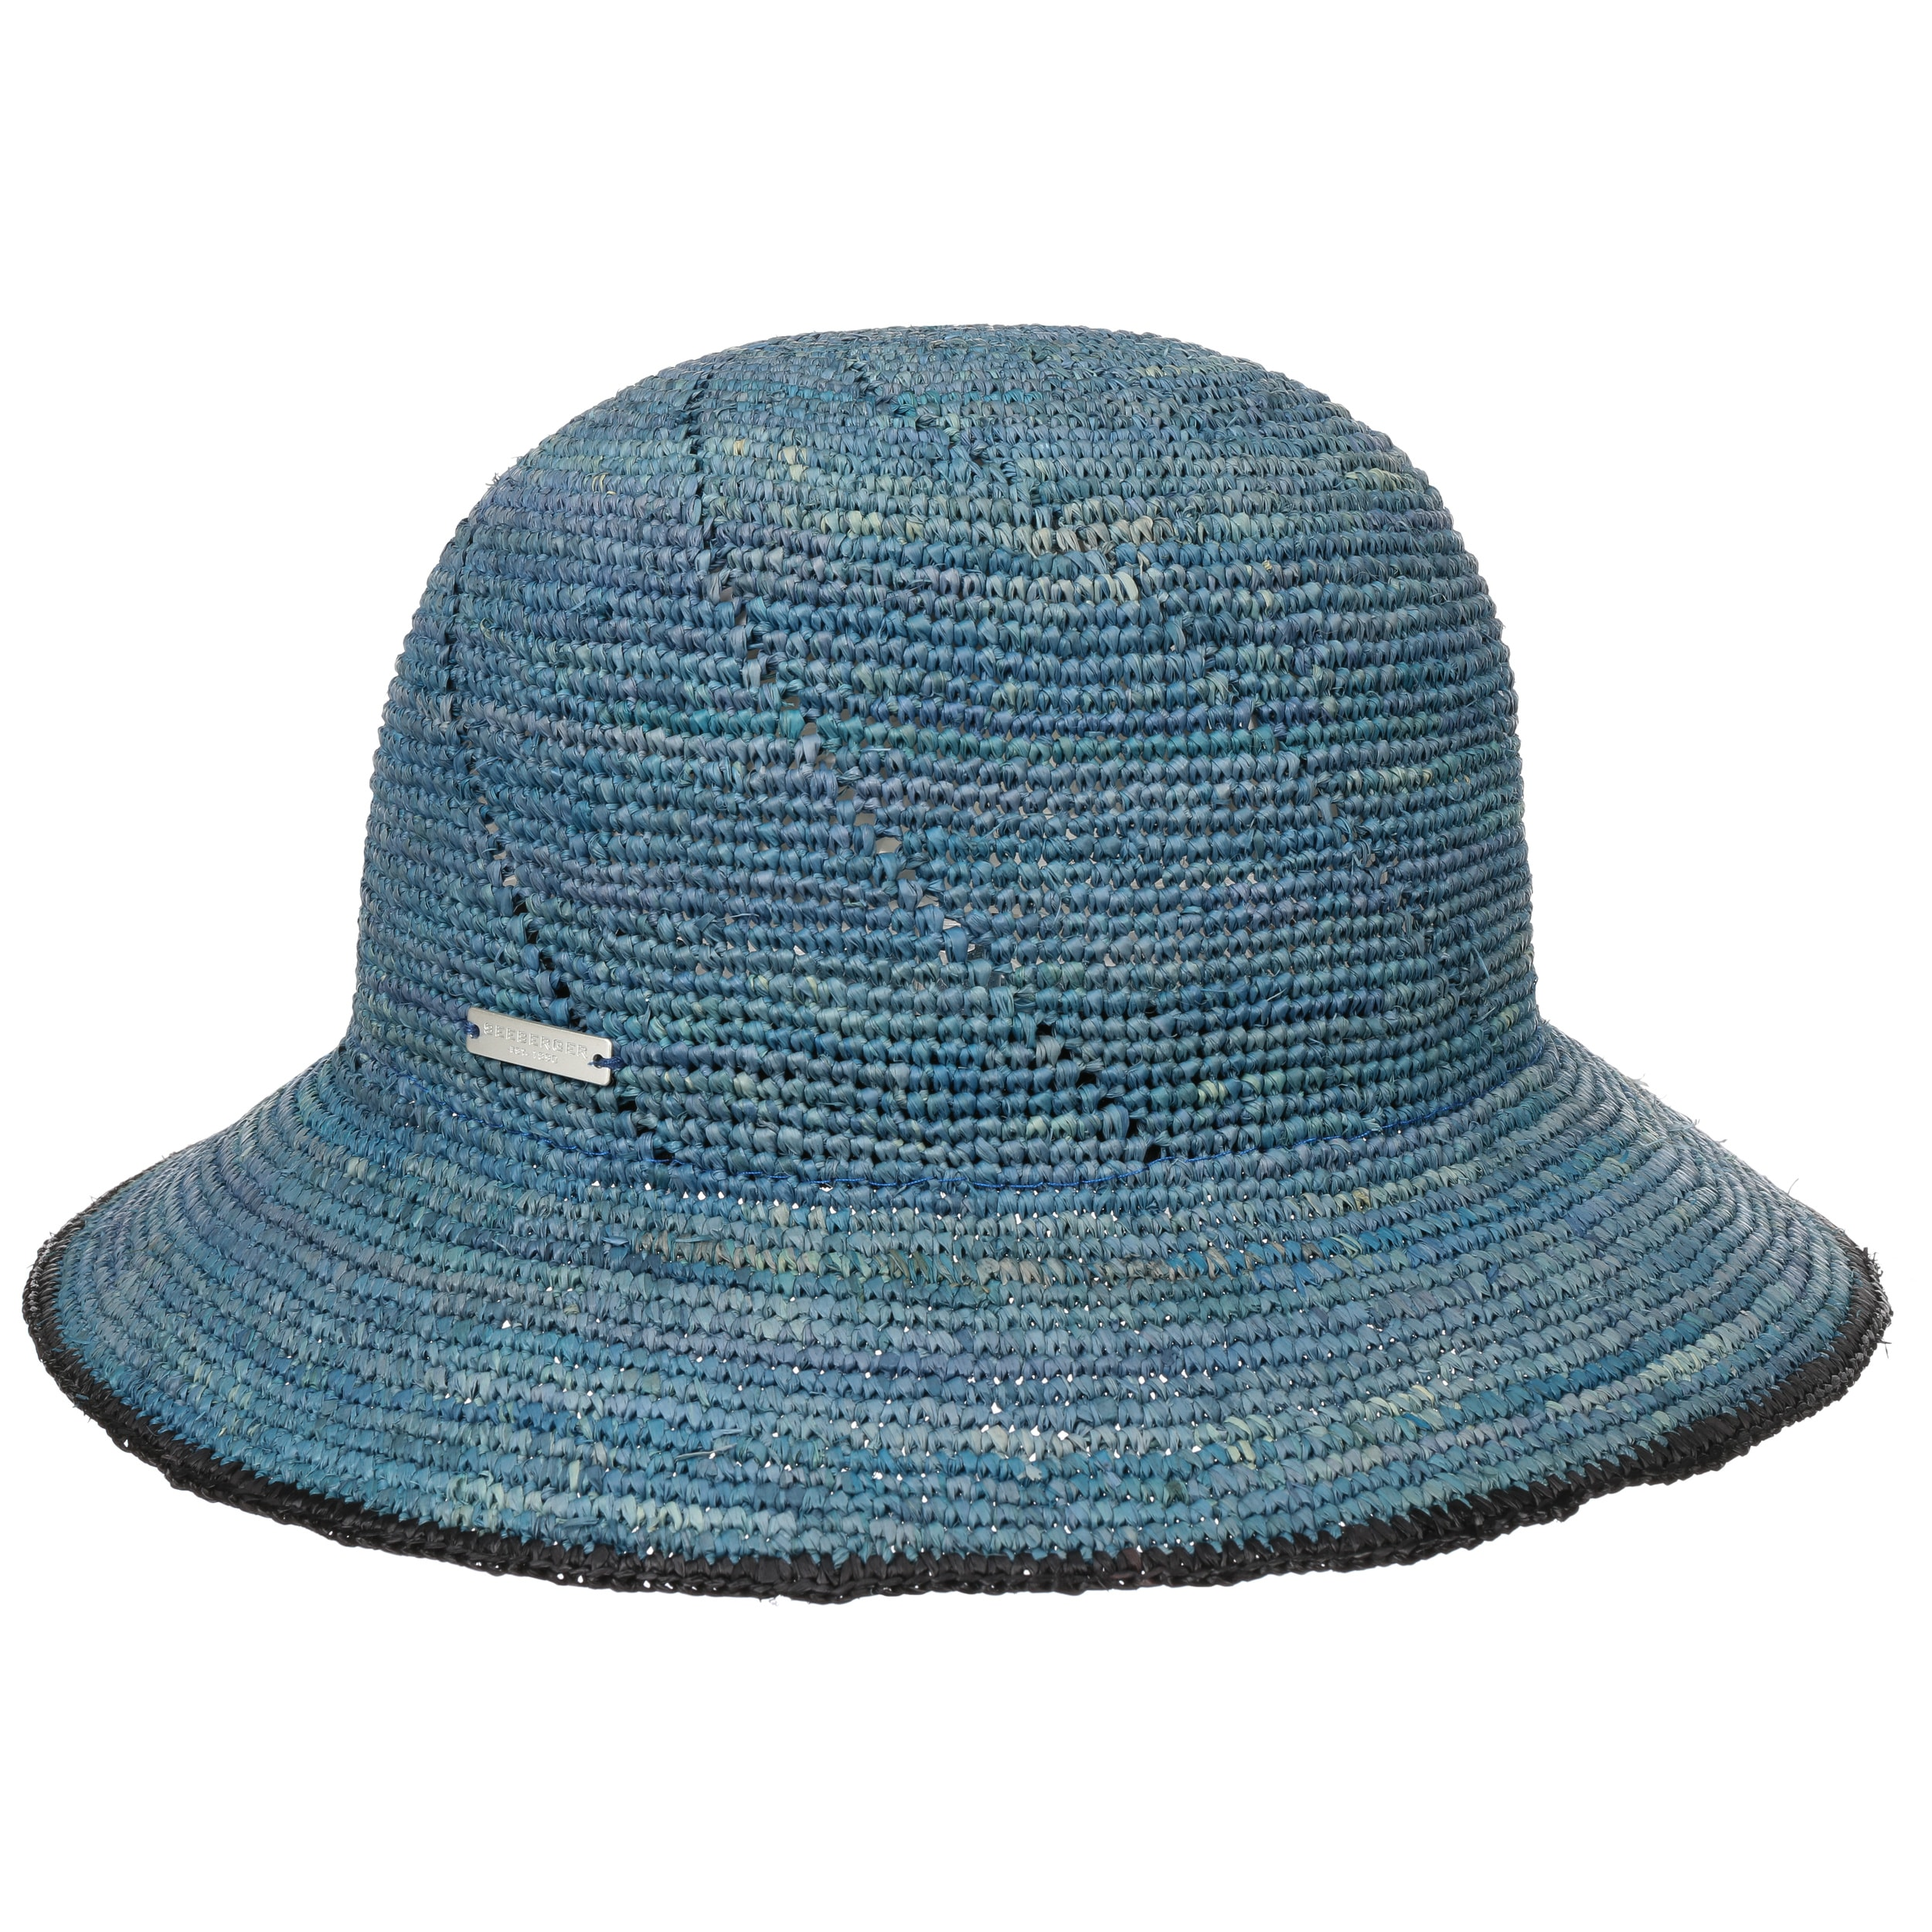 Seeberger Raffia Straw Cloche Aqua/Ink Blue